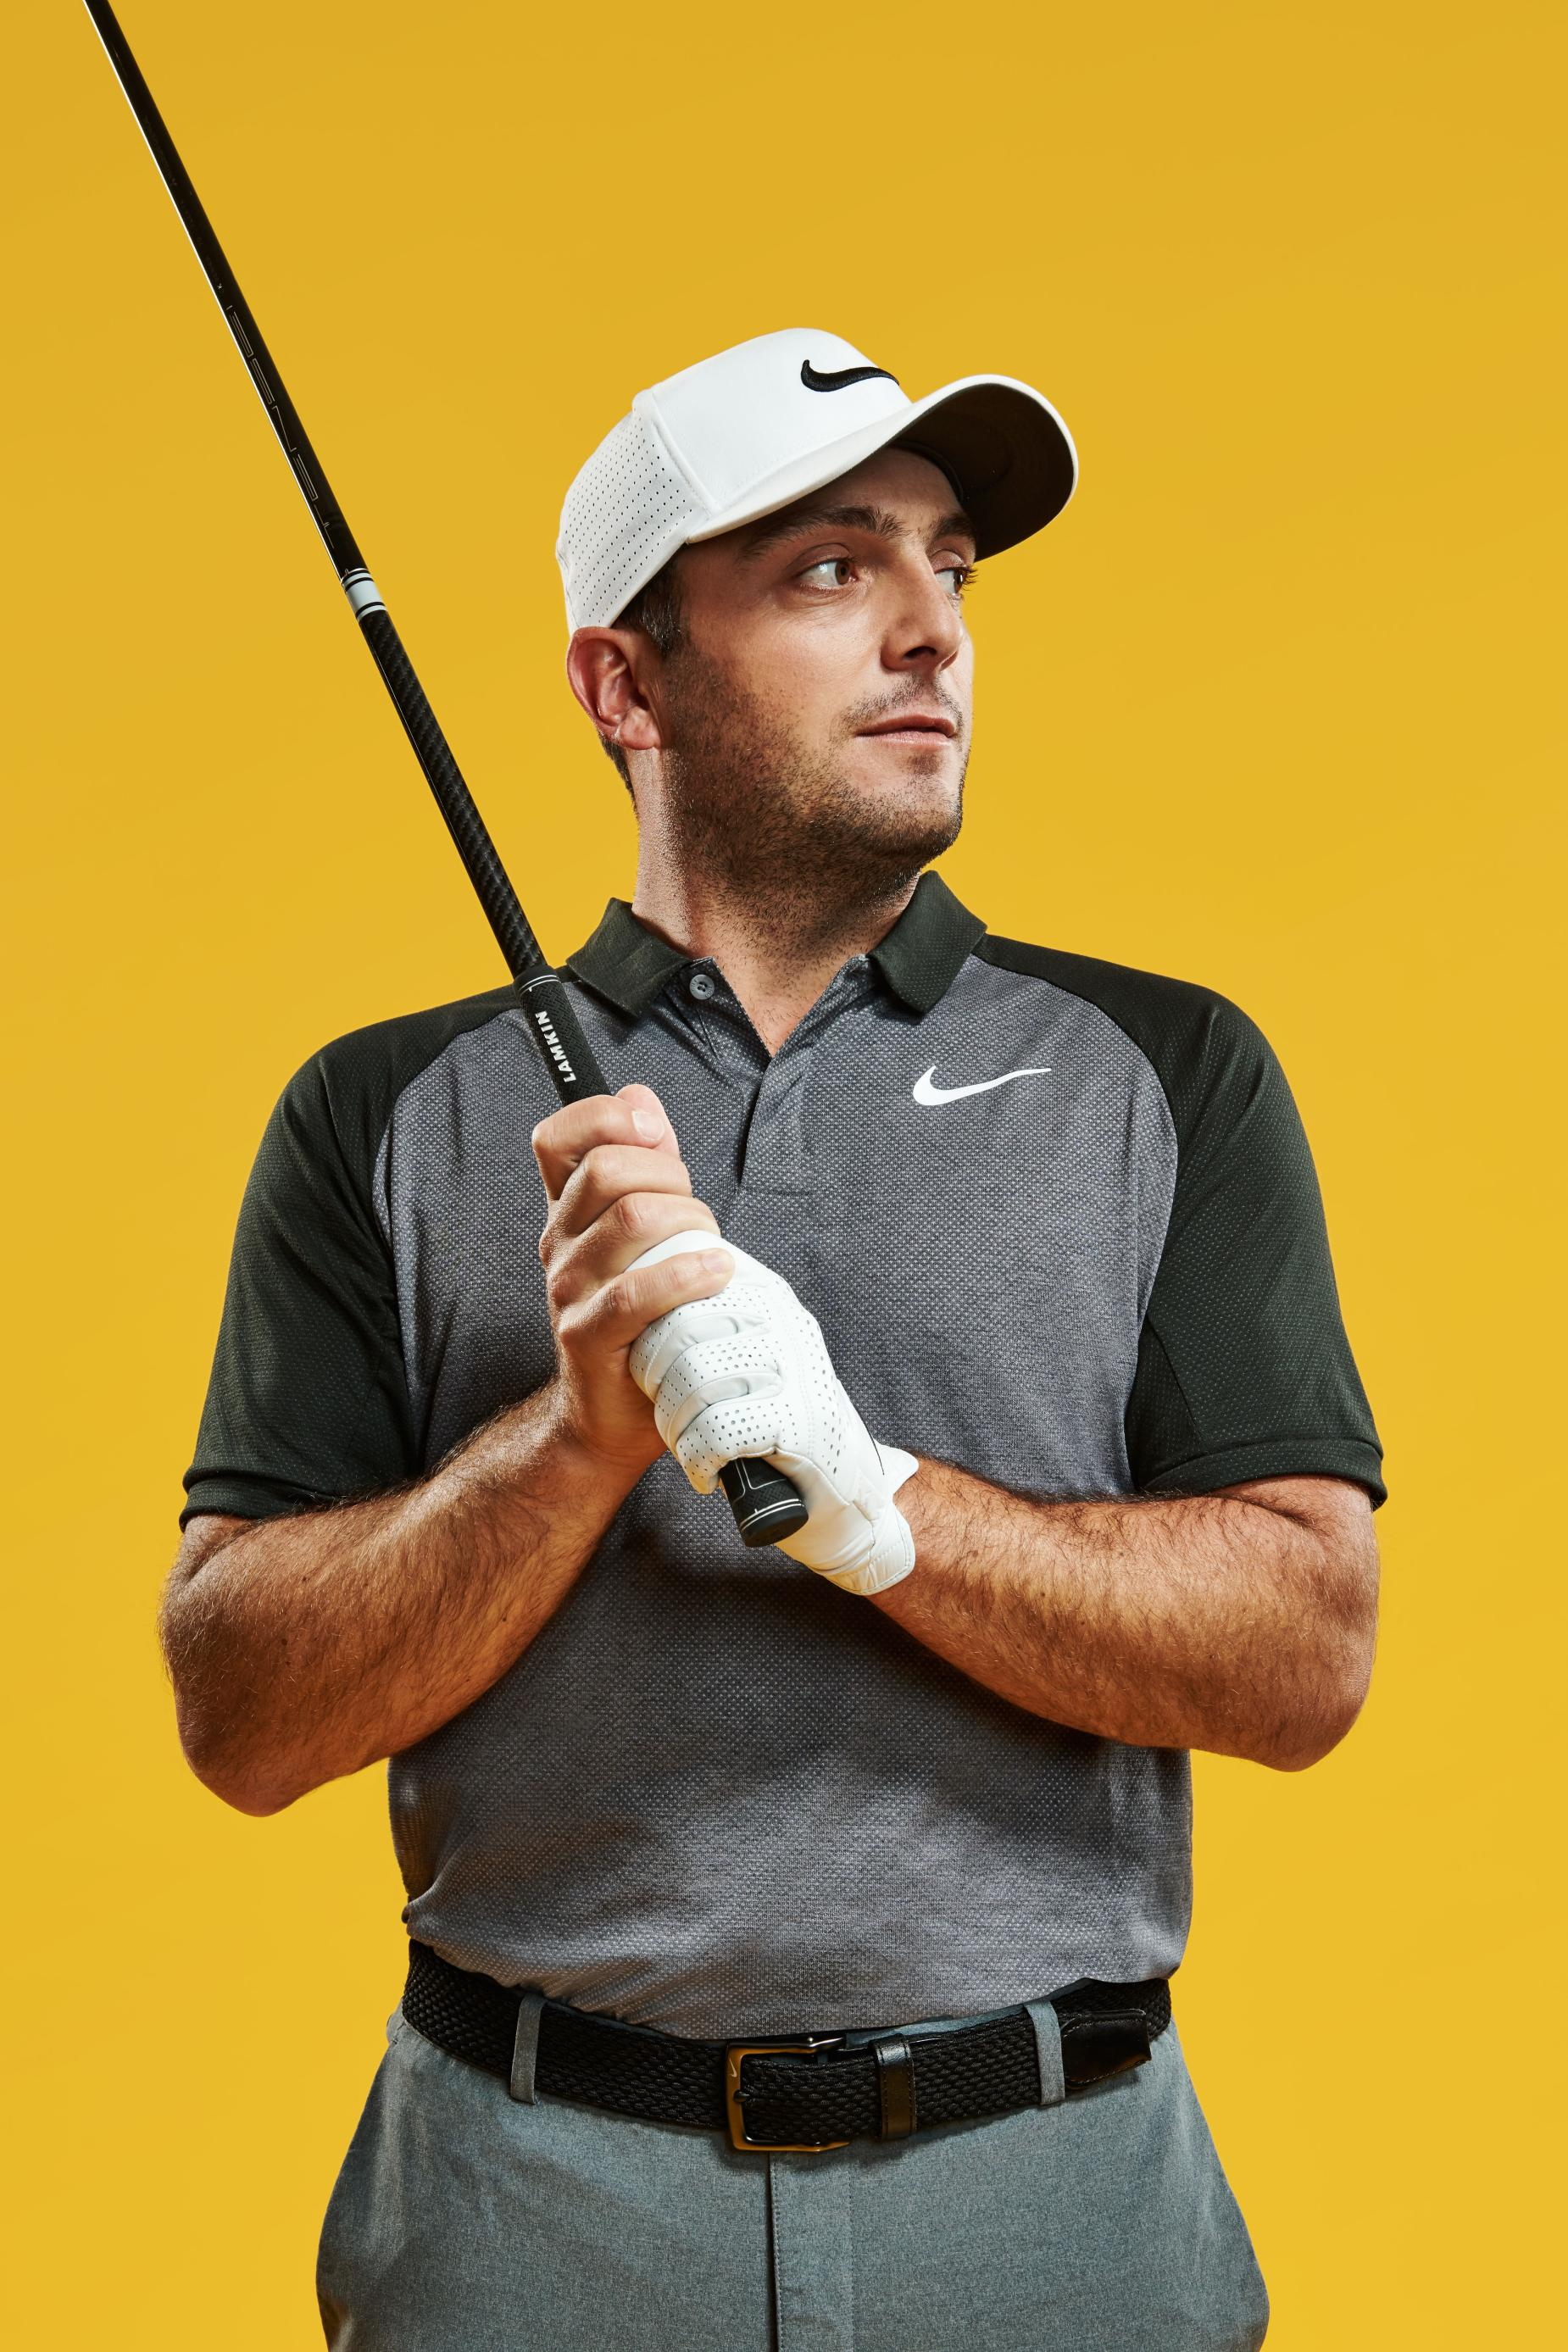 francesco-molinari-gd-dec-jan-feature.jpg